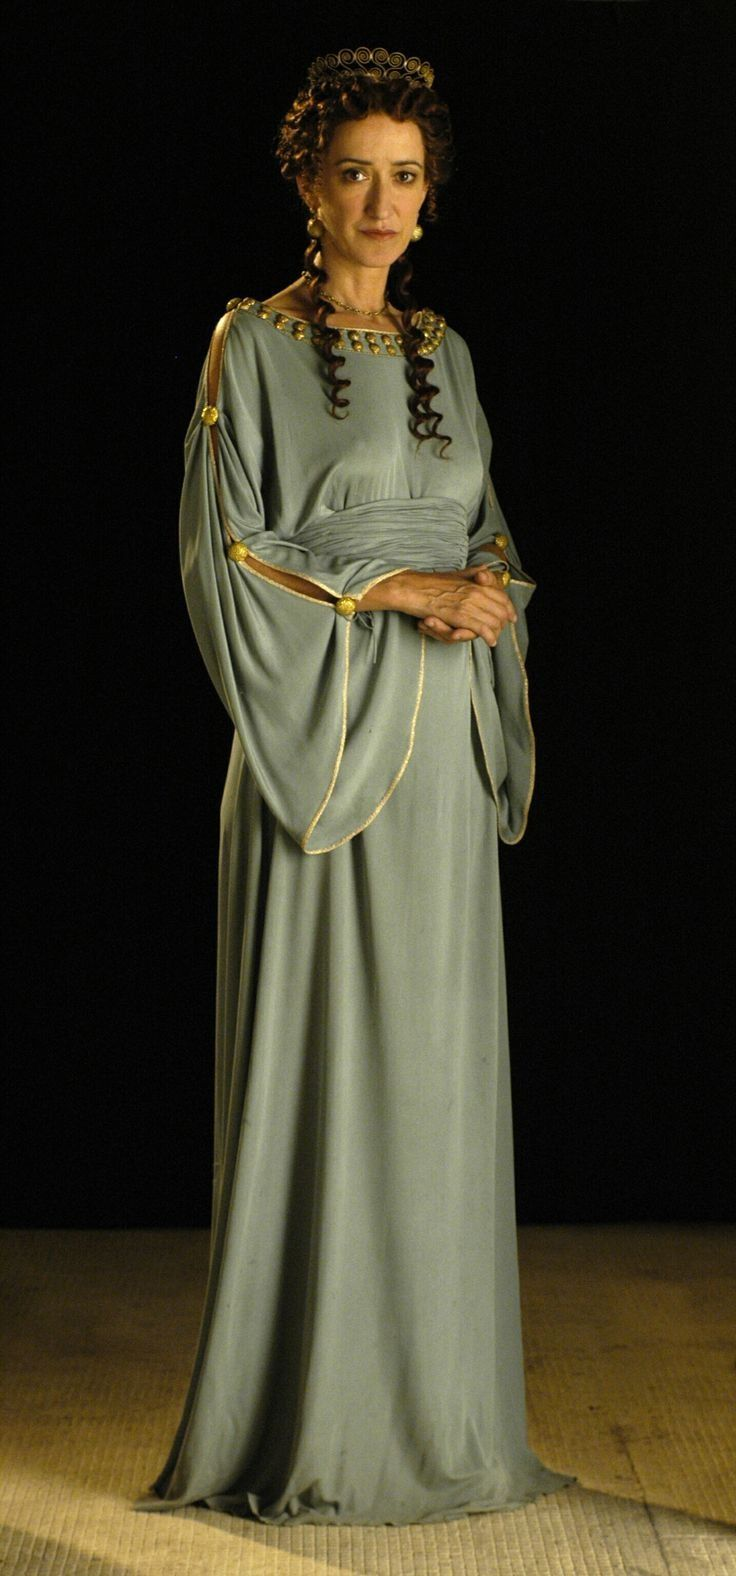 A high class Roman gown, made of finer fabric such as linen ...